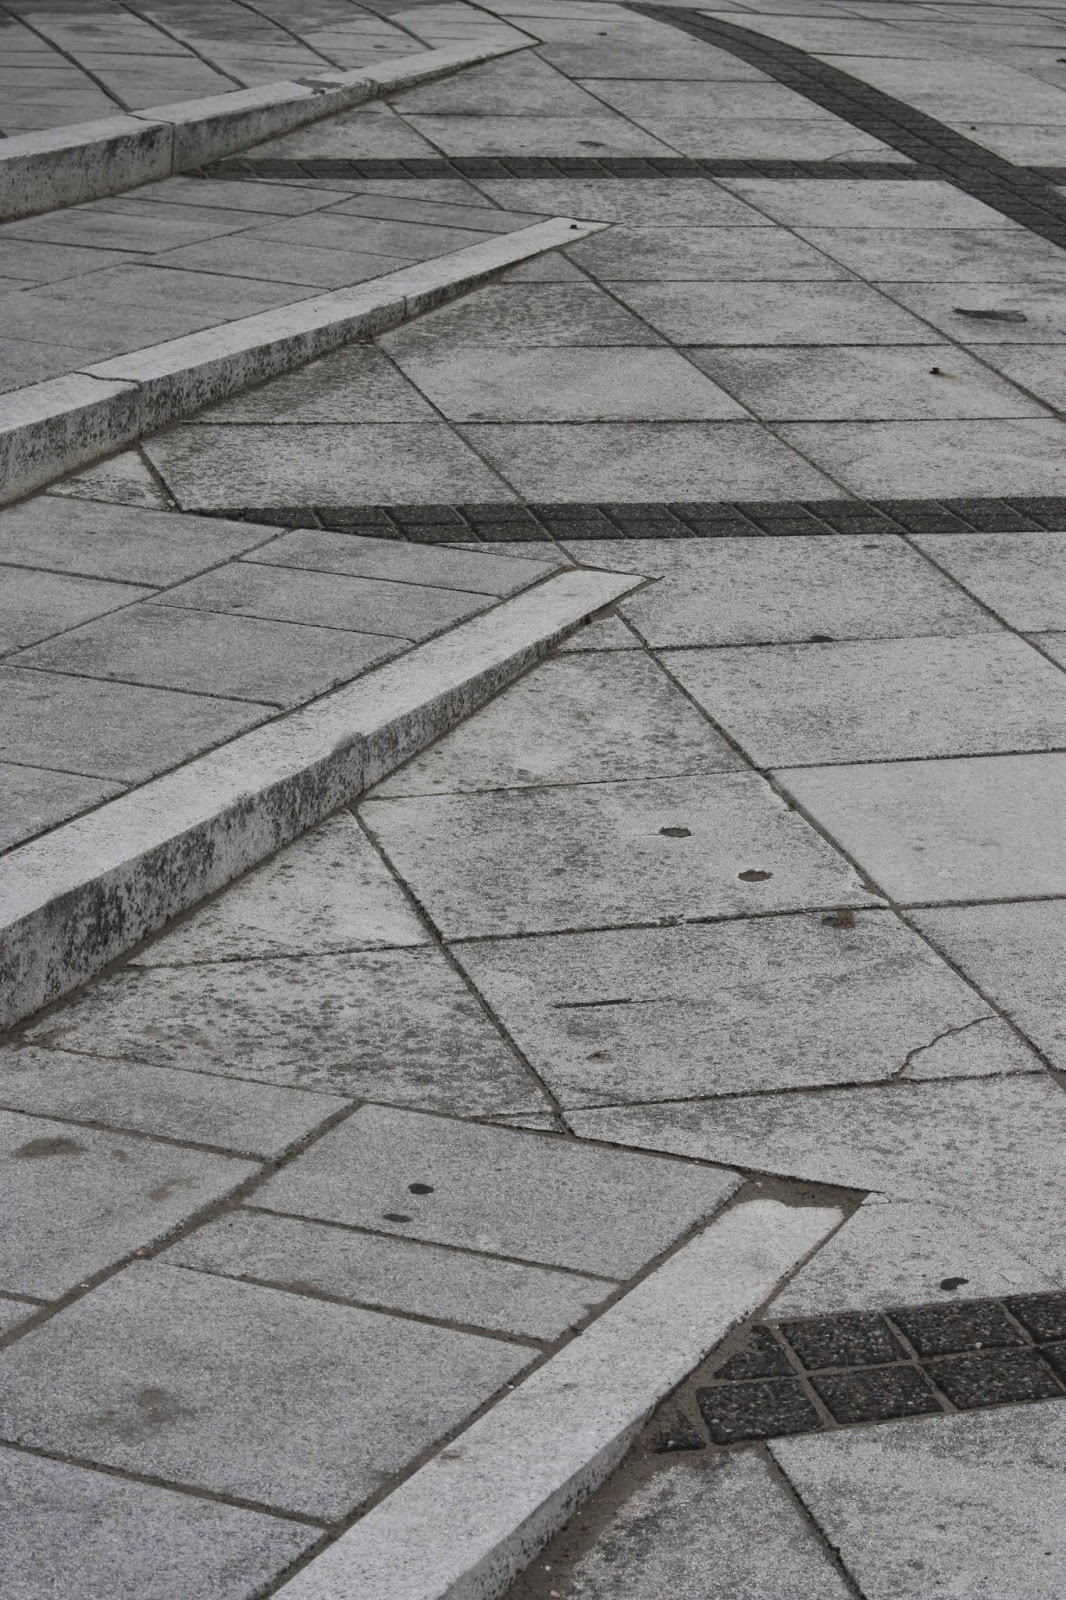 triangles in sidewalk